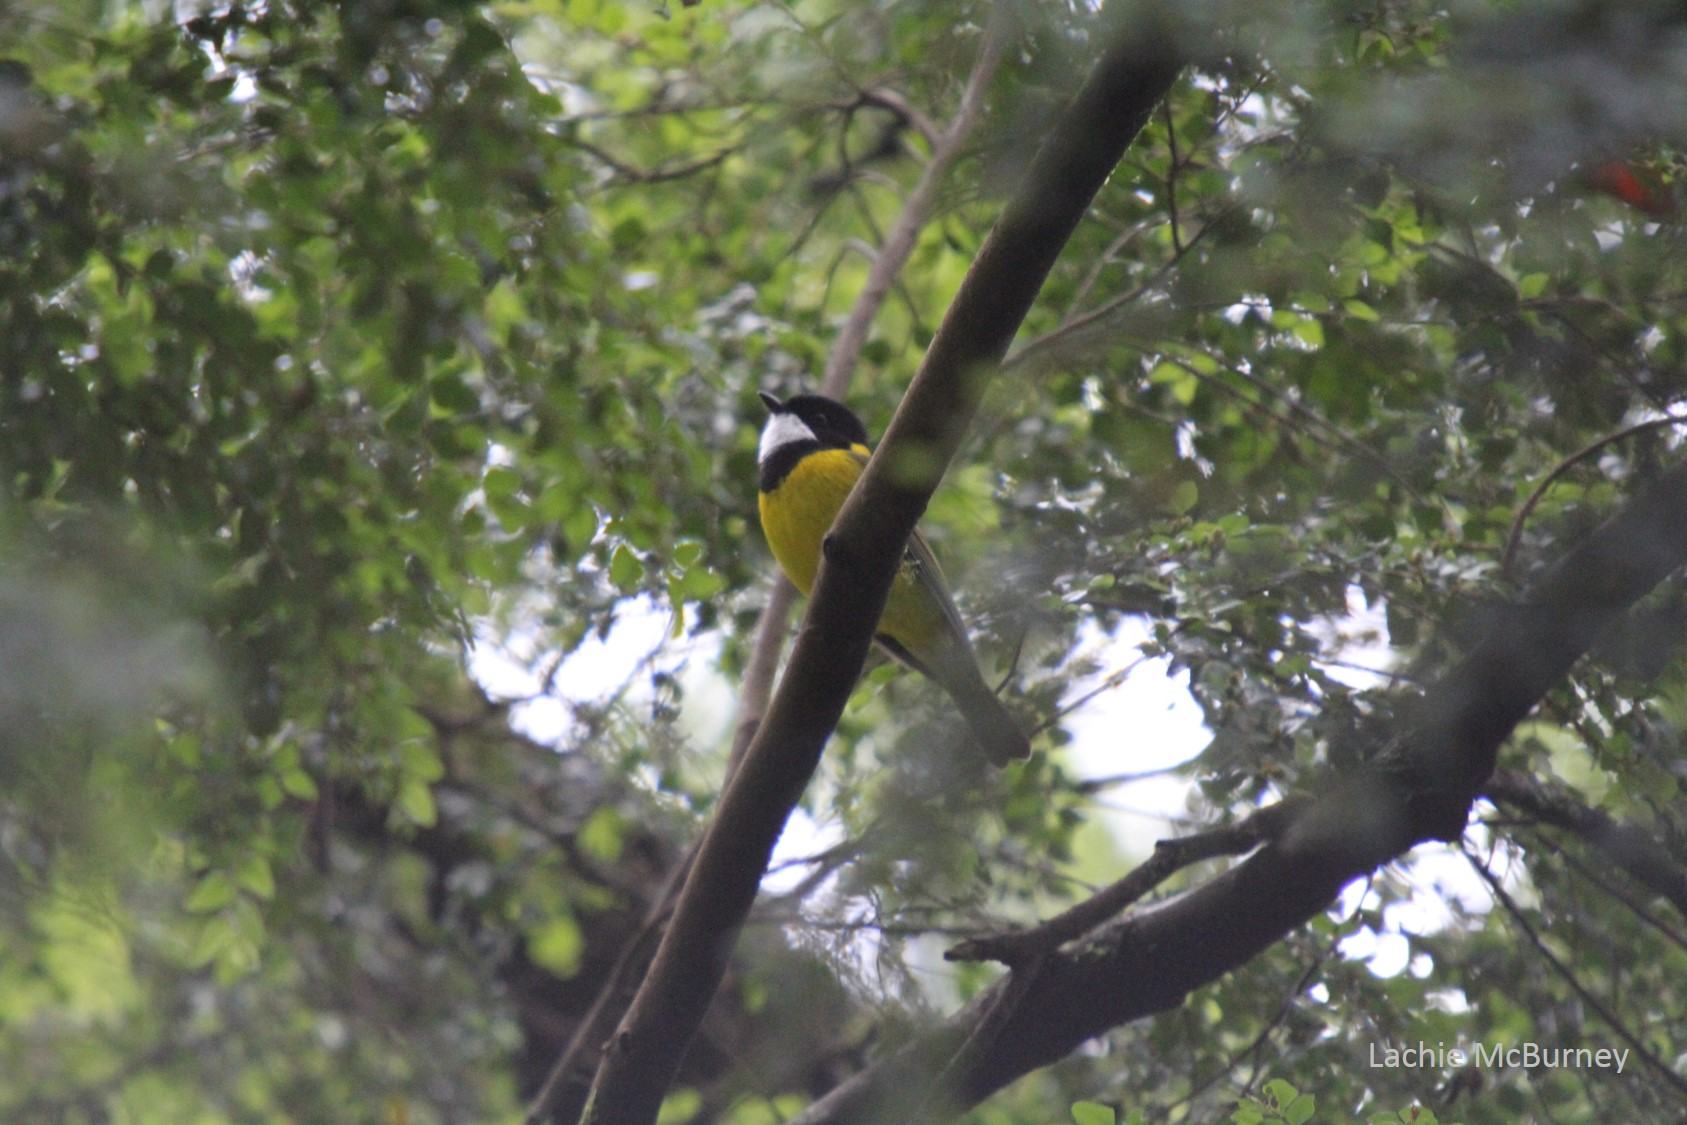 Male Golden Whistler's are easily identified by their bright yellow underside and strong musical song.